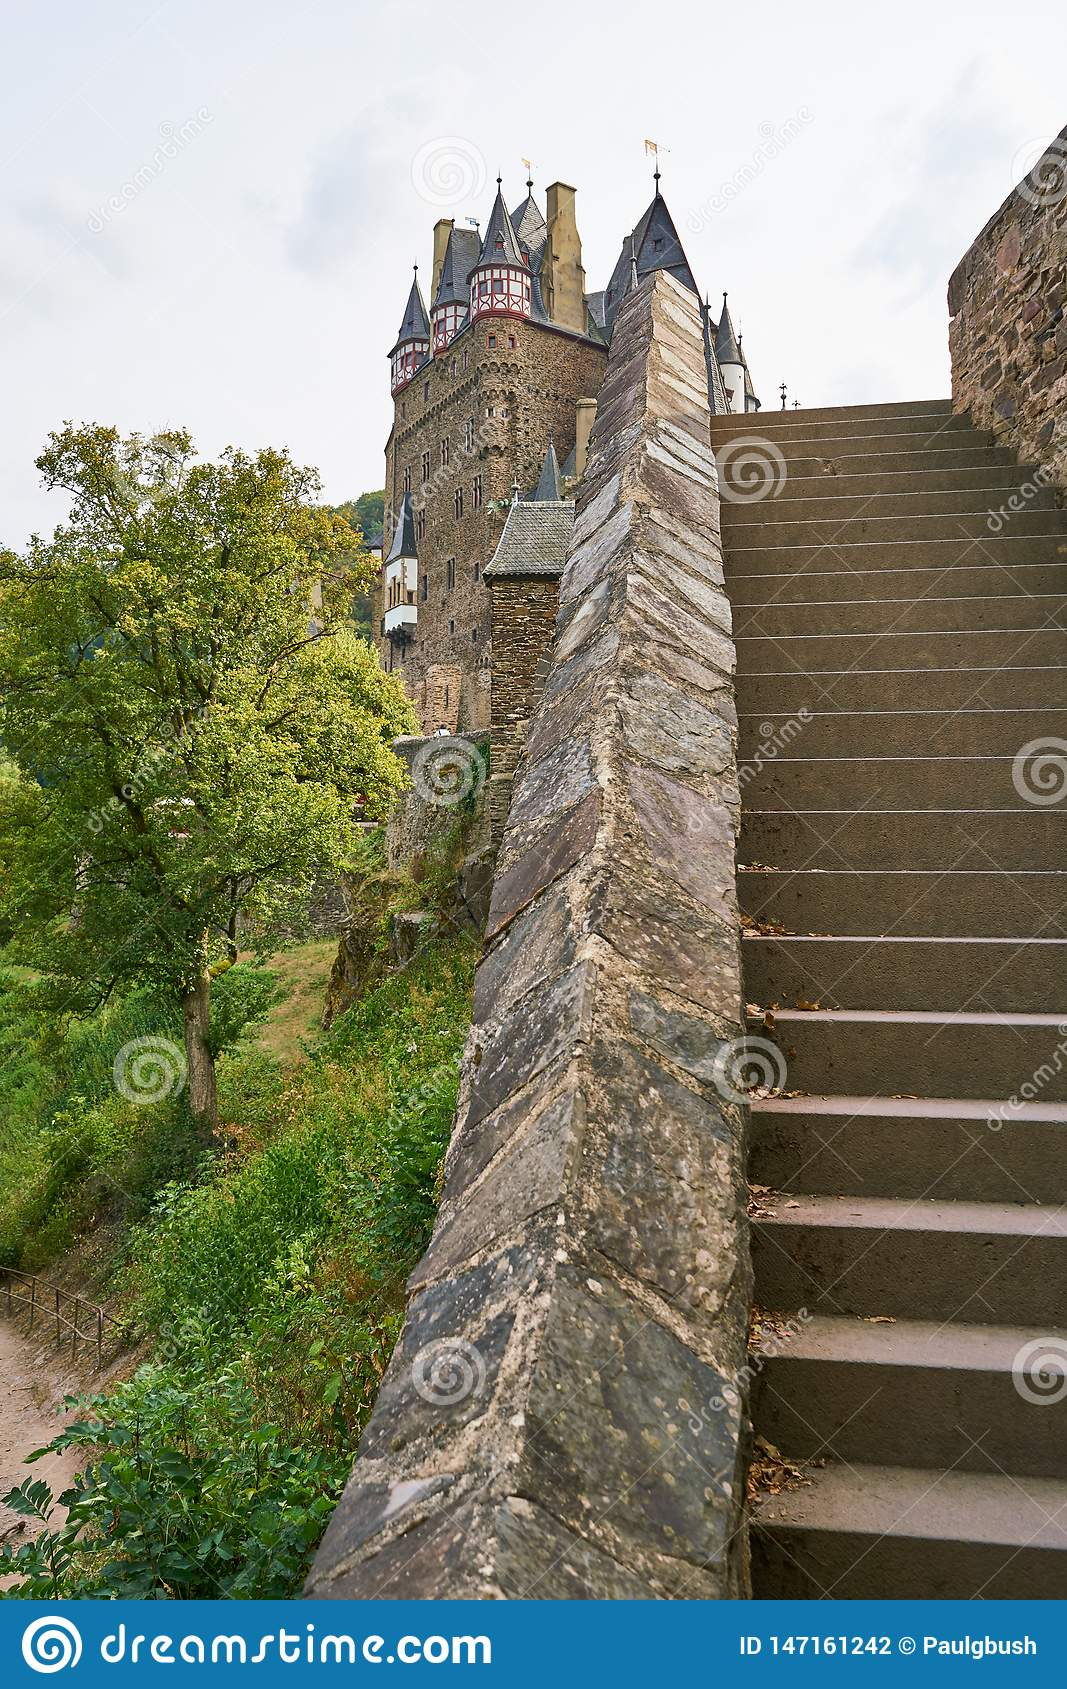 Unique view of Burg Eltz in the Moselle Region, Germany